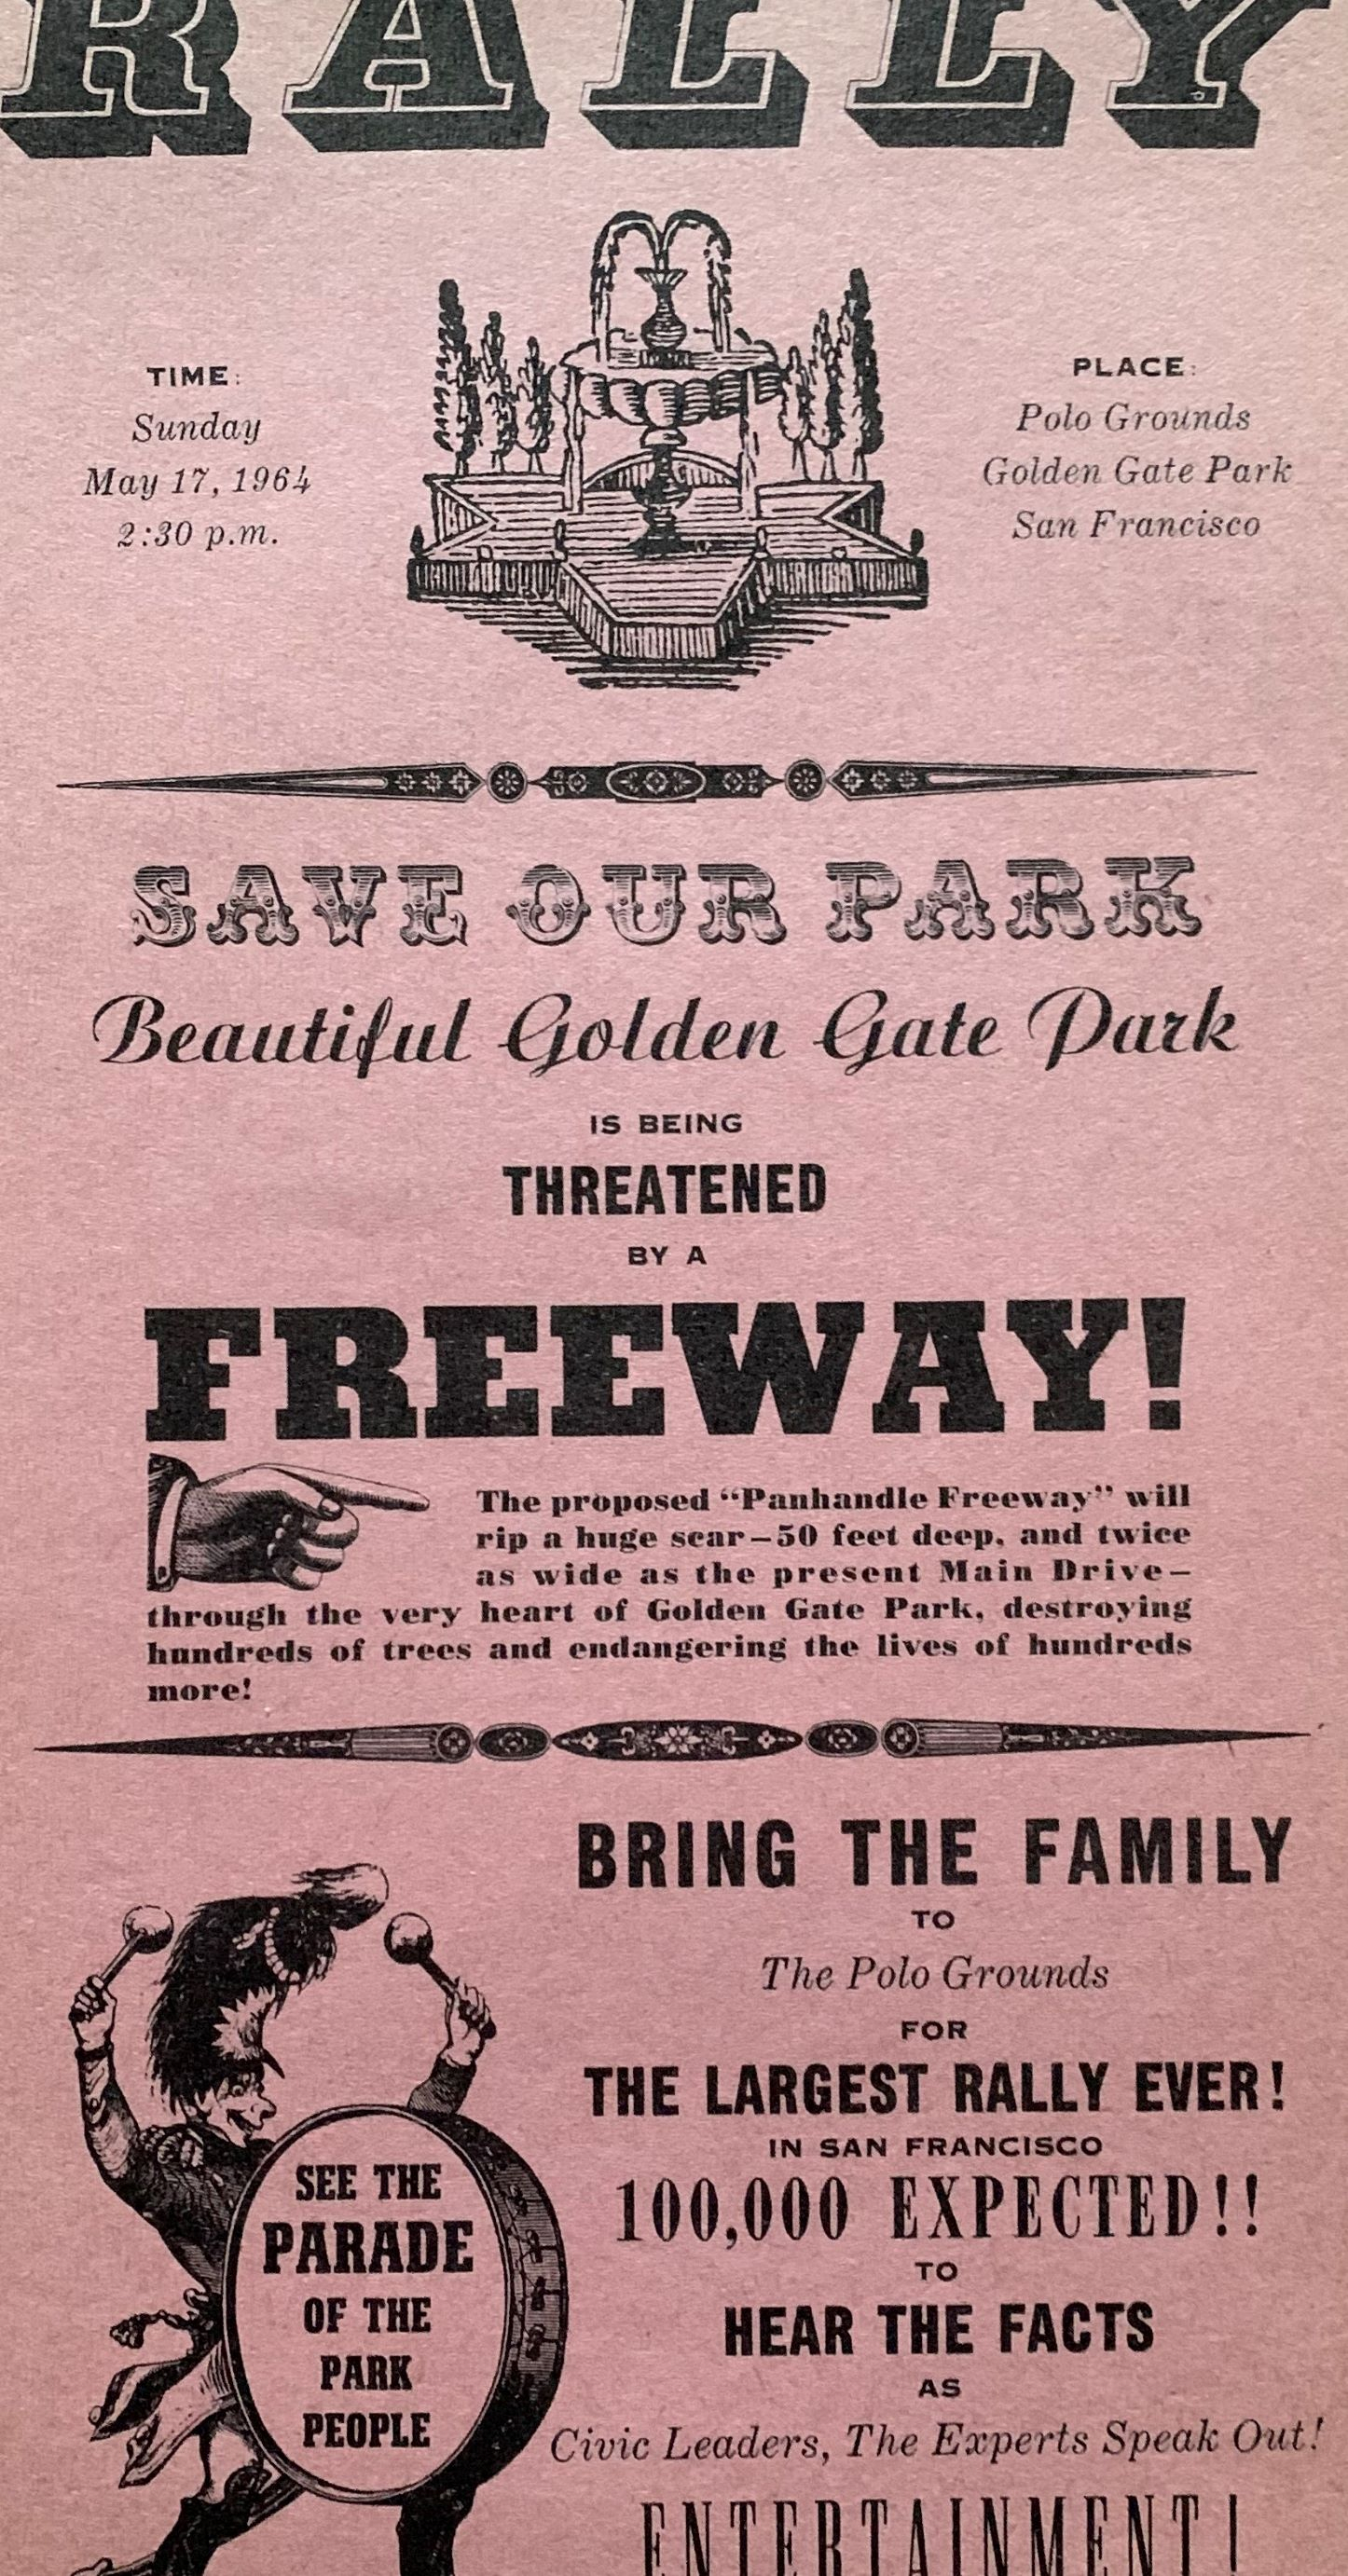 Image for [Broadside] Rally, Save Our Park, Beautiful Golden Gate Park is being THREATENED by a FREEWAY! . . .